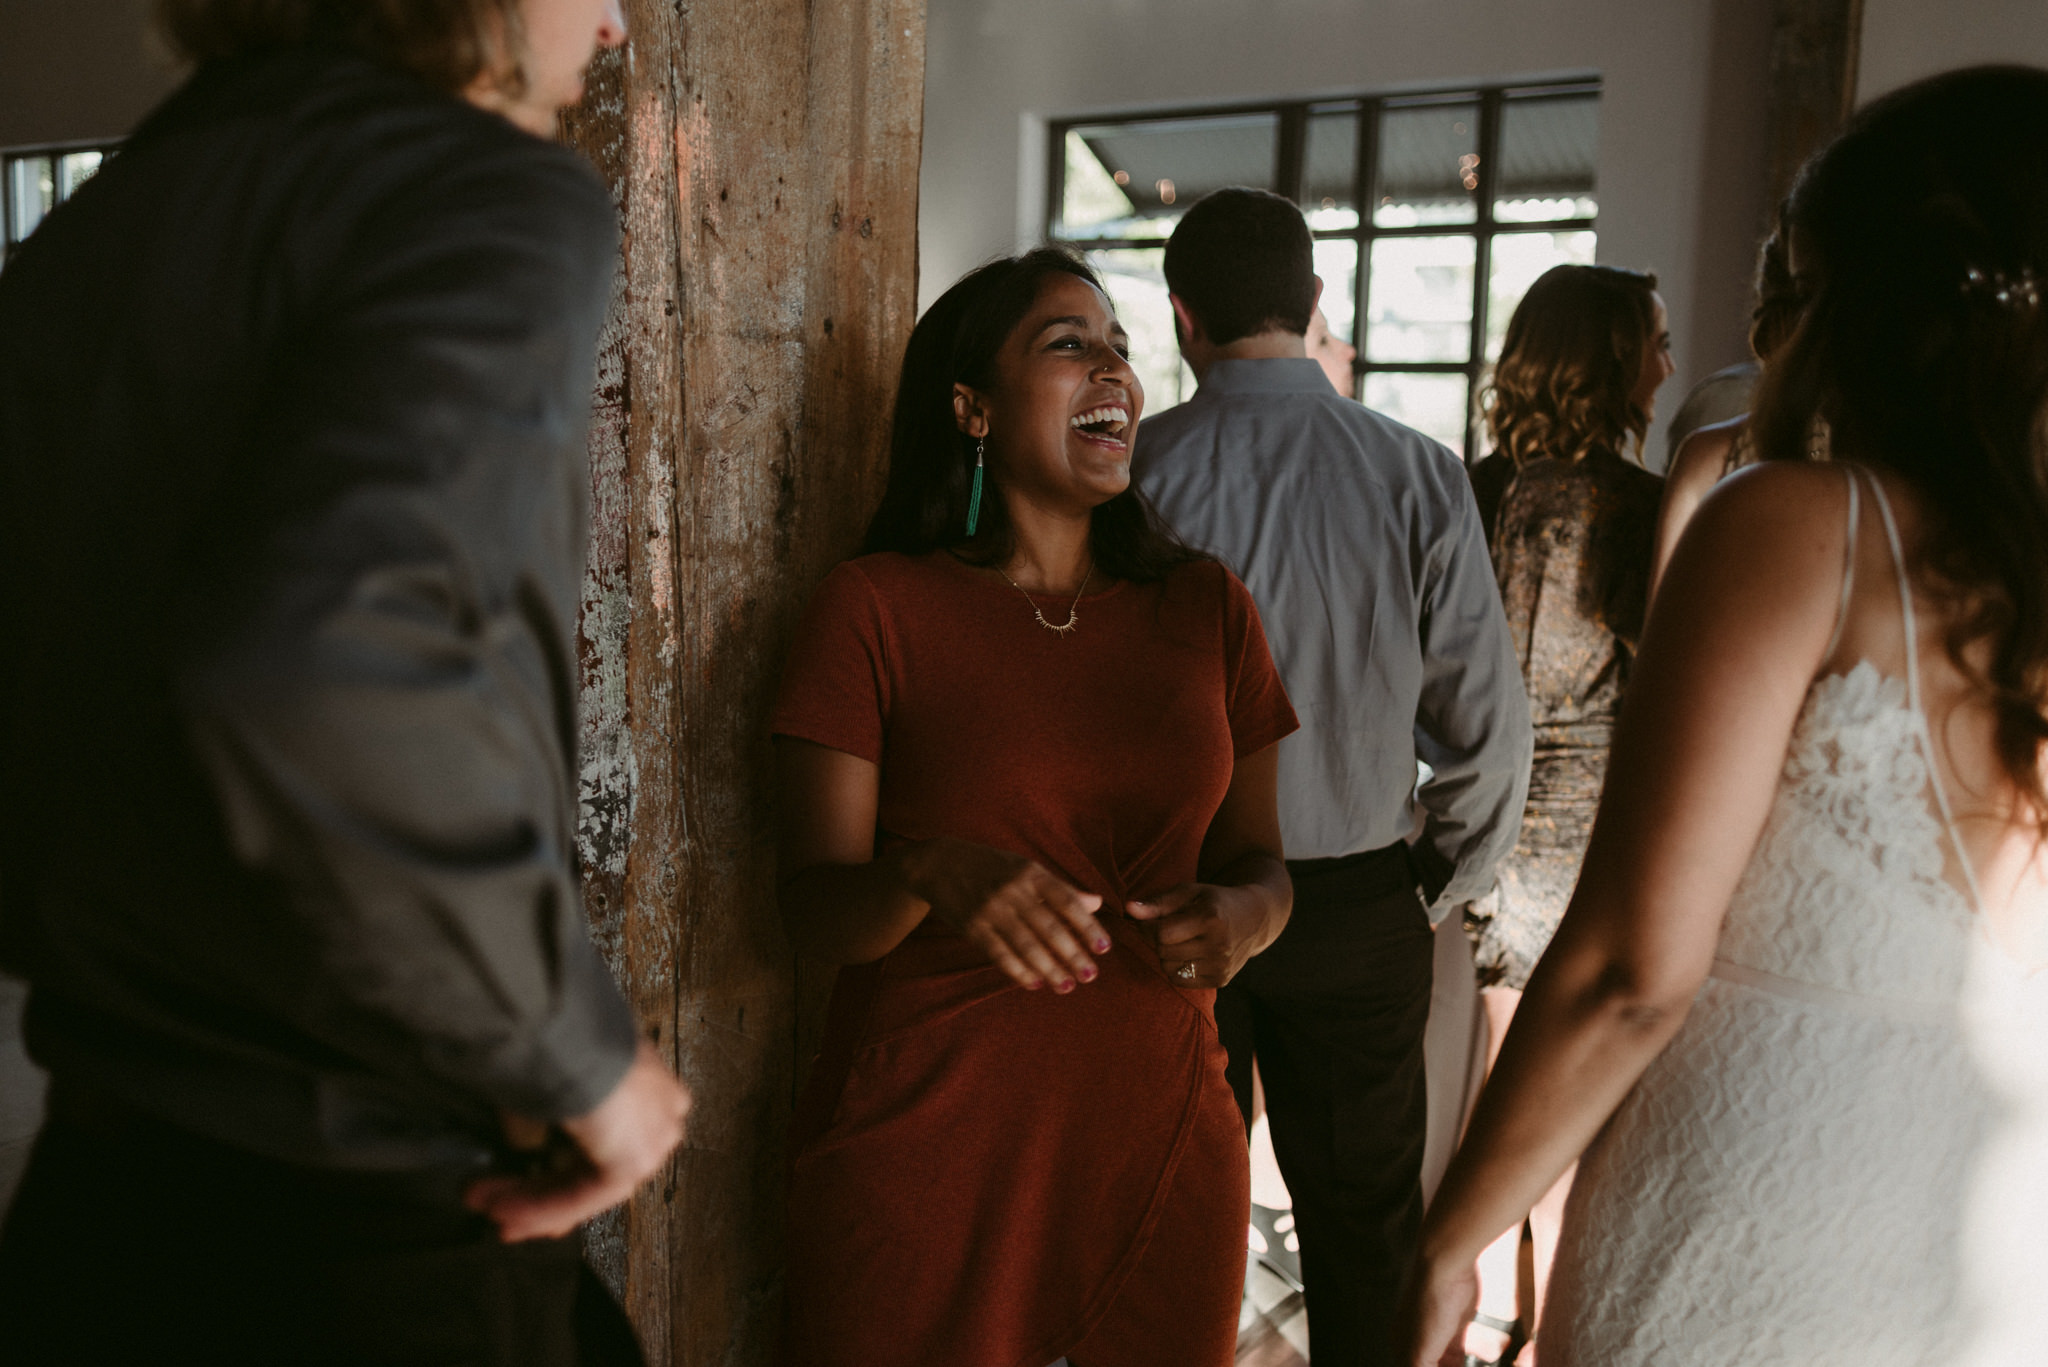 guests laughing during cocktail hour at wedding